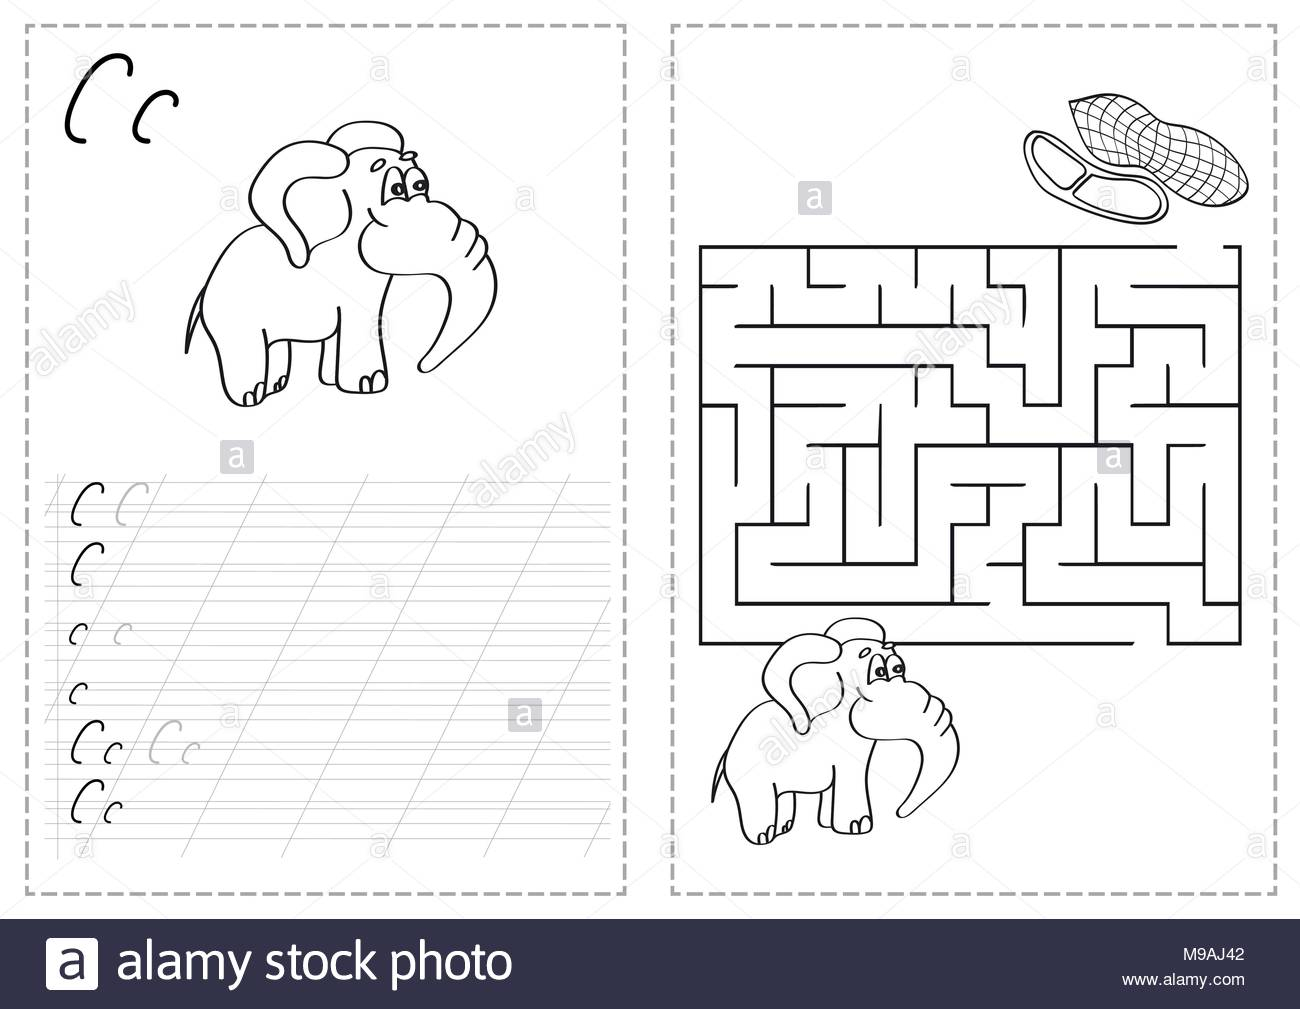 Russian Alphabet Black And White Stock Photos & Images - Alamy